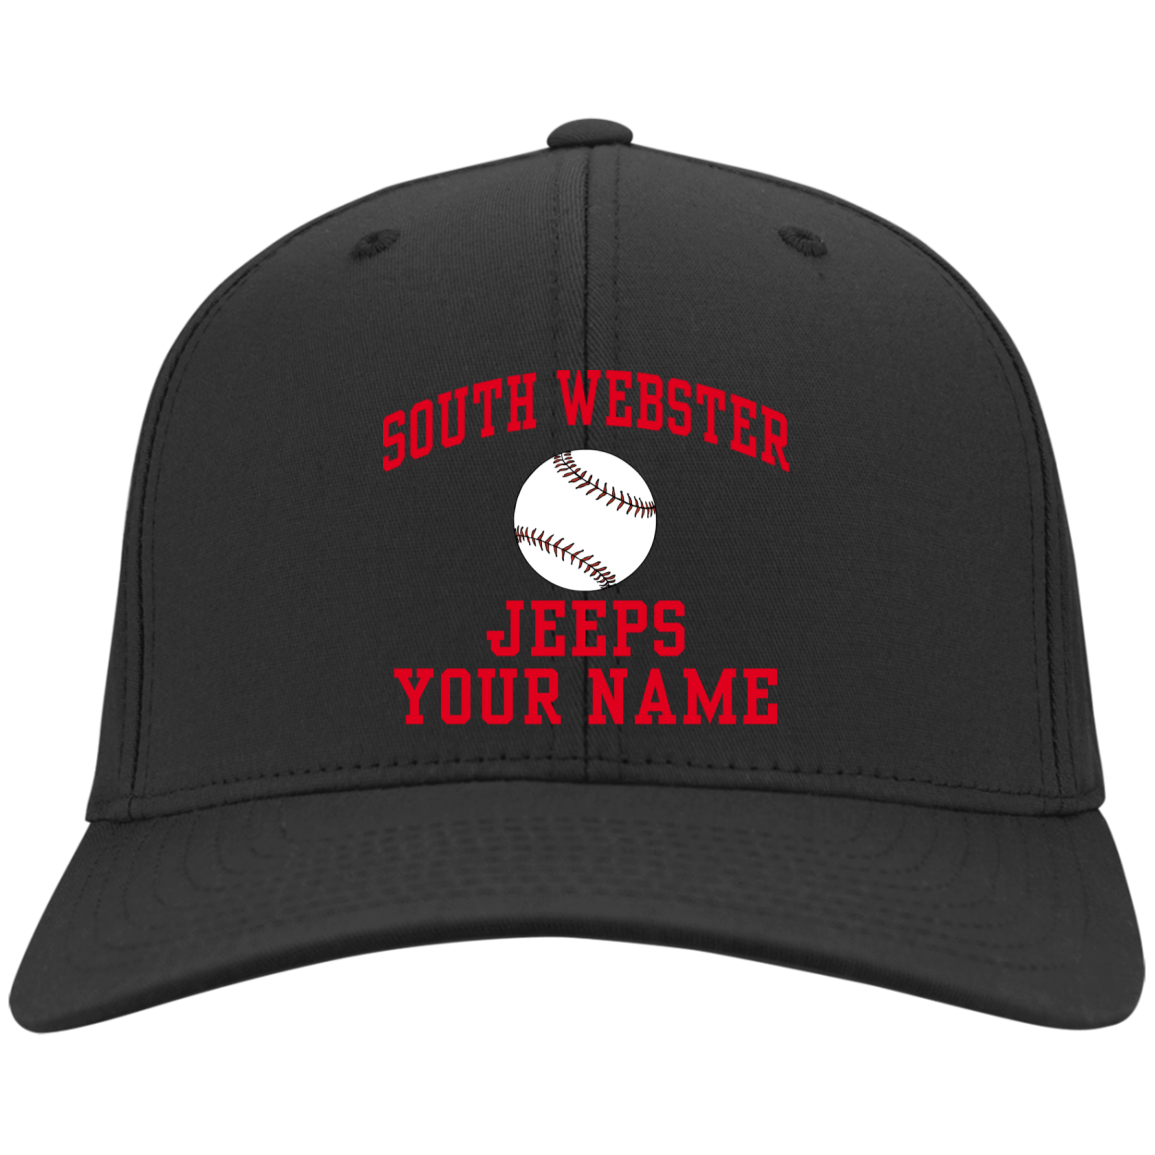 fbe9203d93ec3 South Webster High School Six-Panel Twill Cap - SpiritShop.com